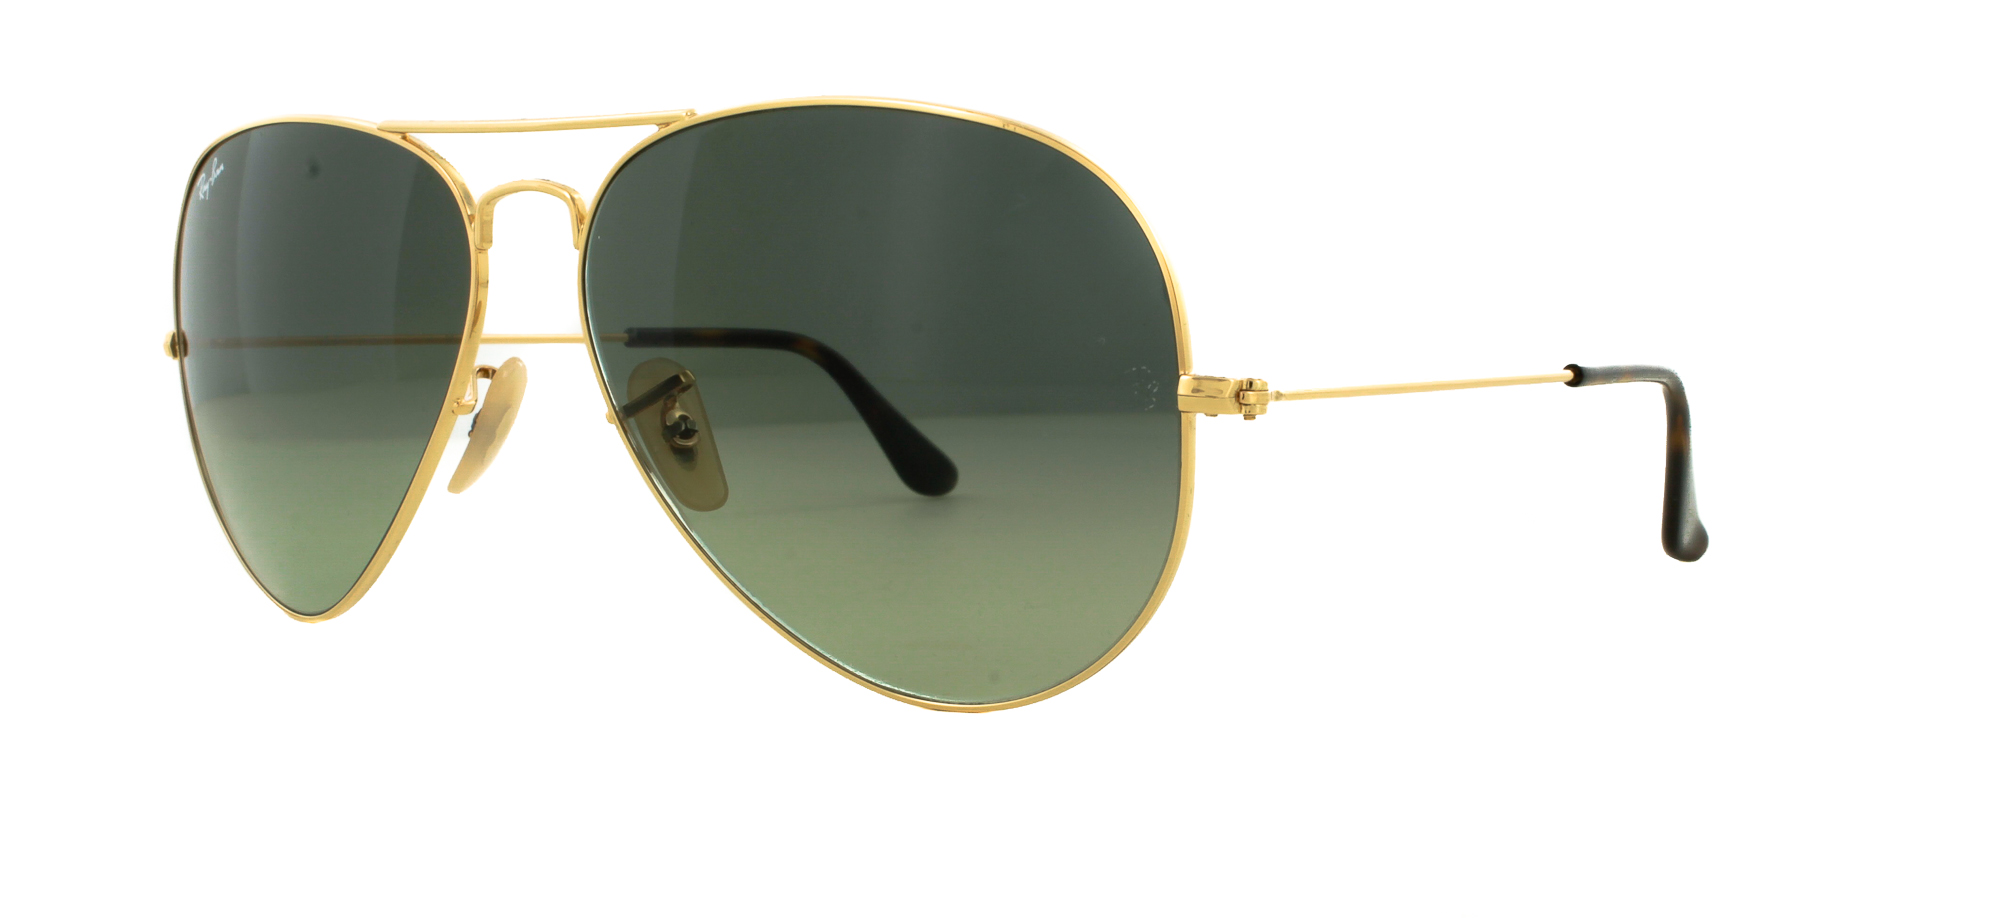 Ray ban 3359 for Decor my eyes